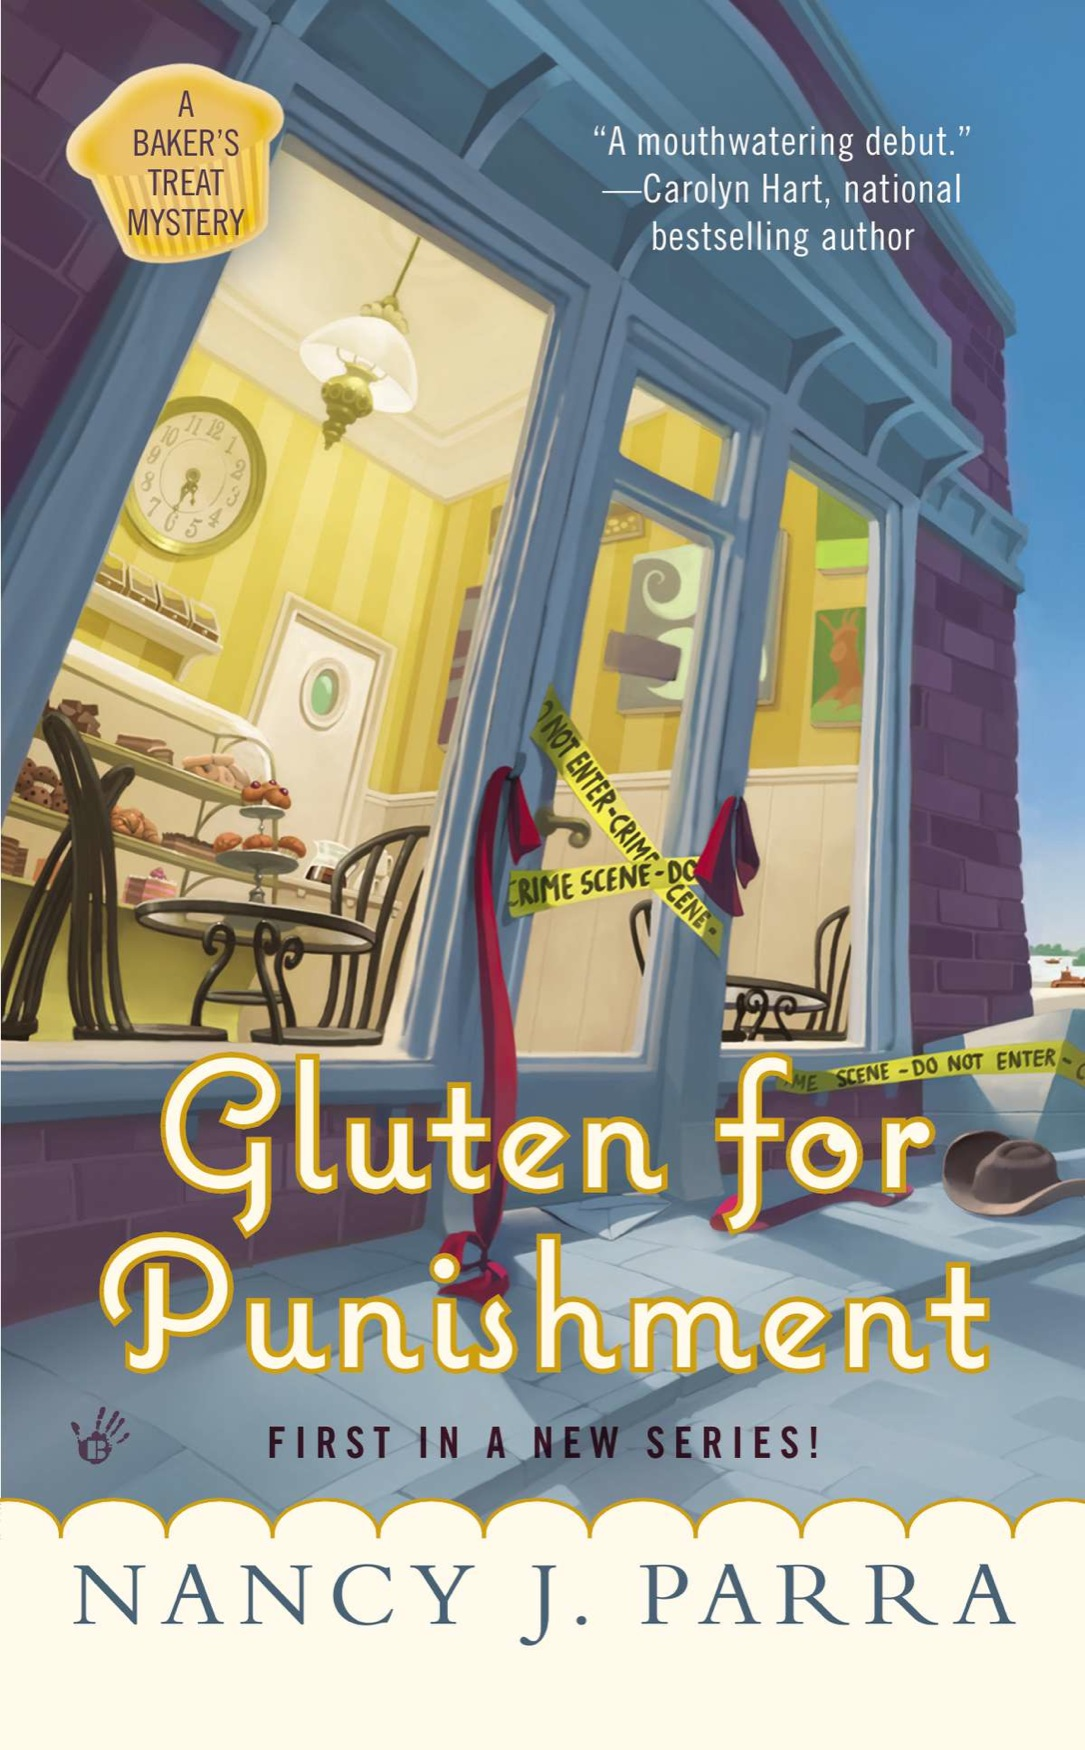 Gluten for Punishment (2013) by Nancy J. Parra